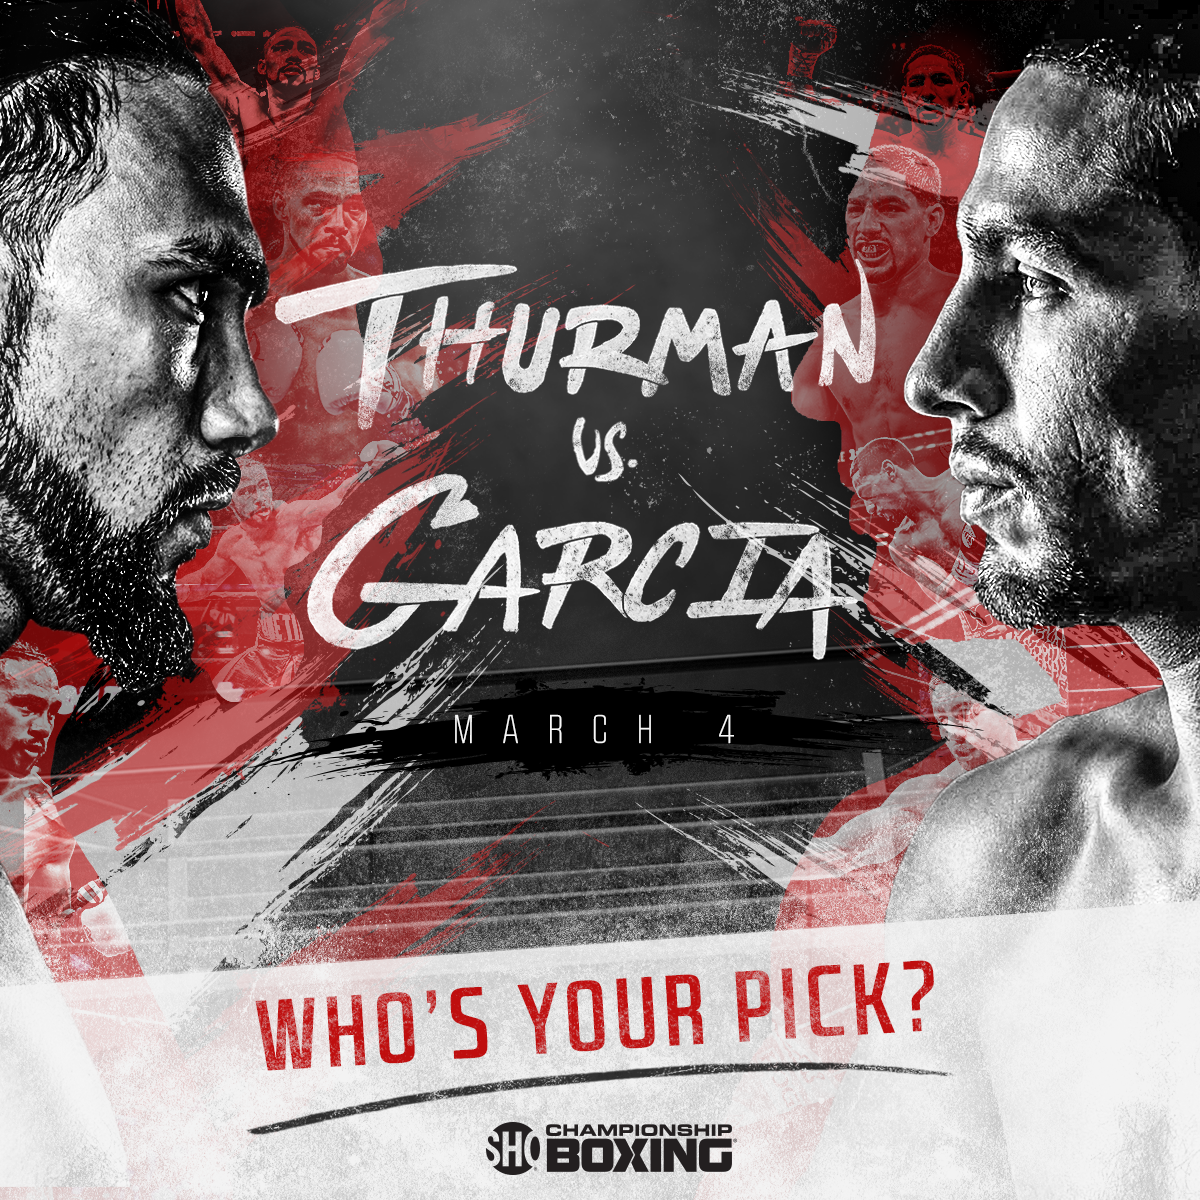 2017-01-11_Gracia-Thurman_Whos-Your-Pick_1200.png